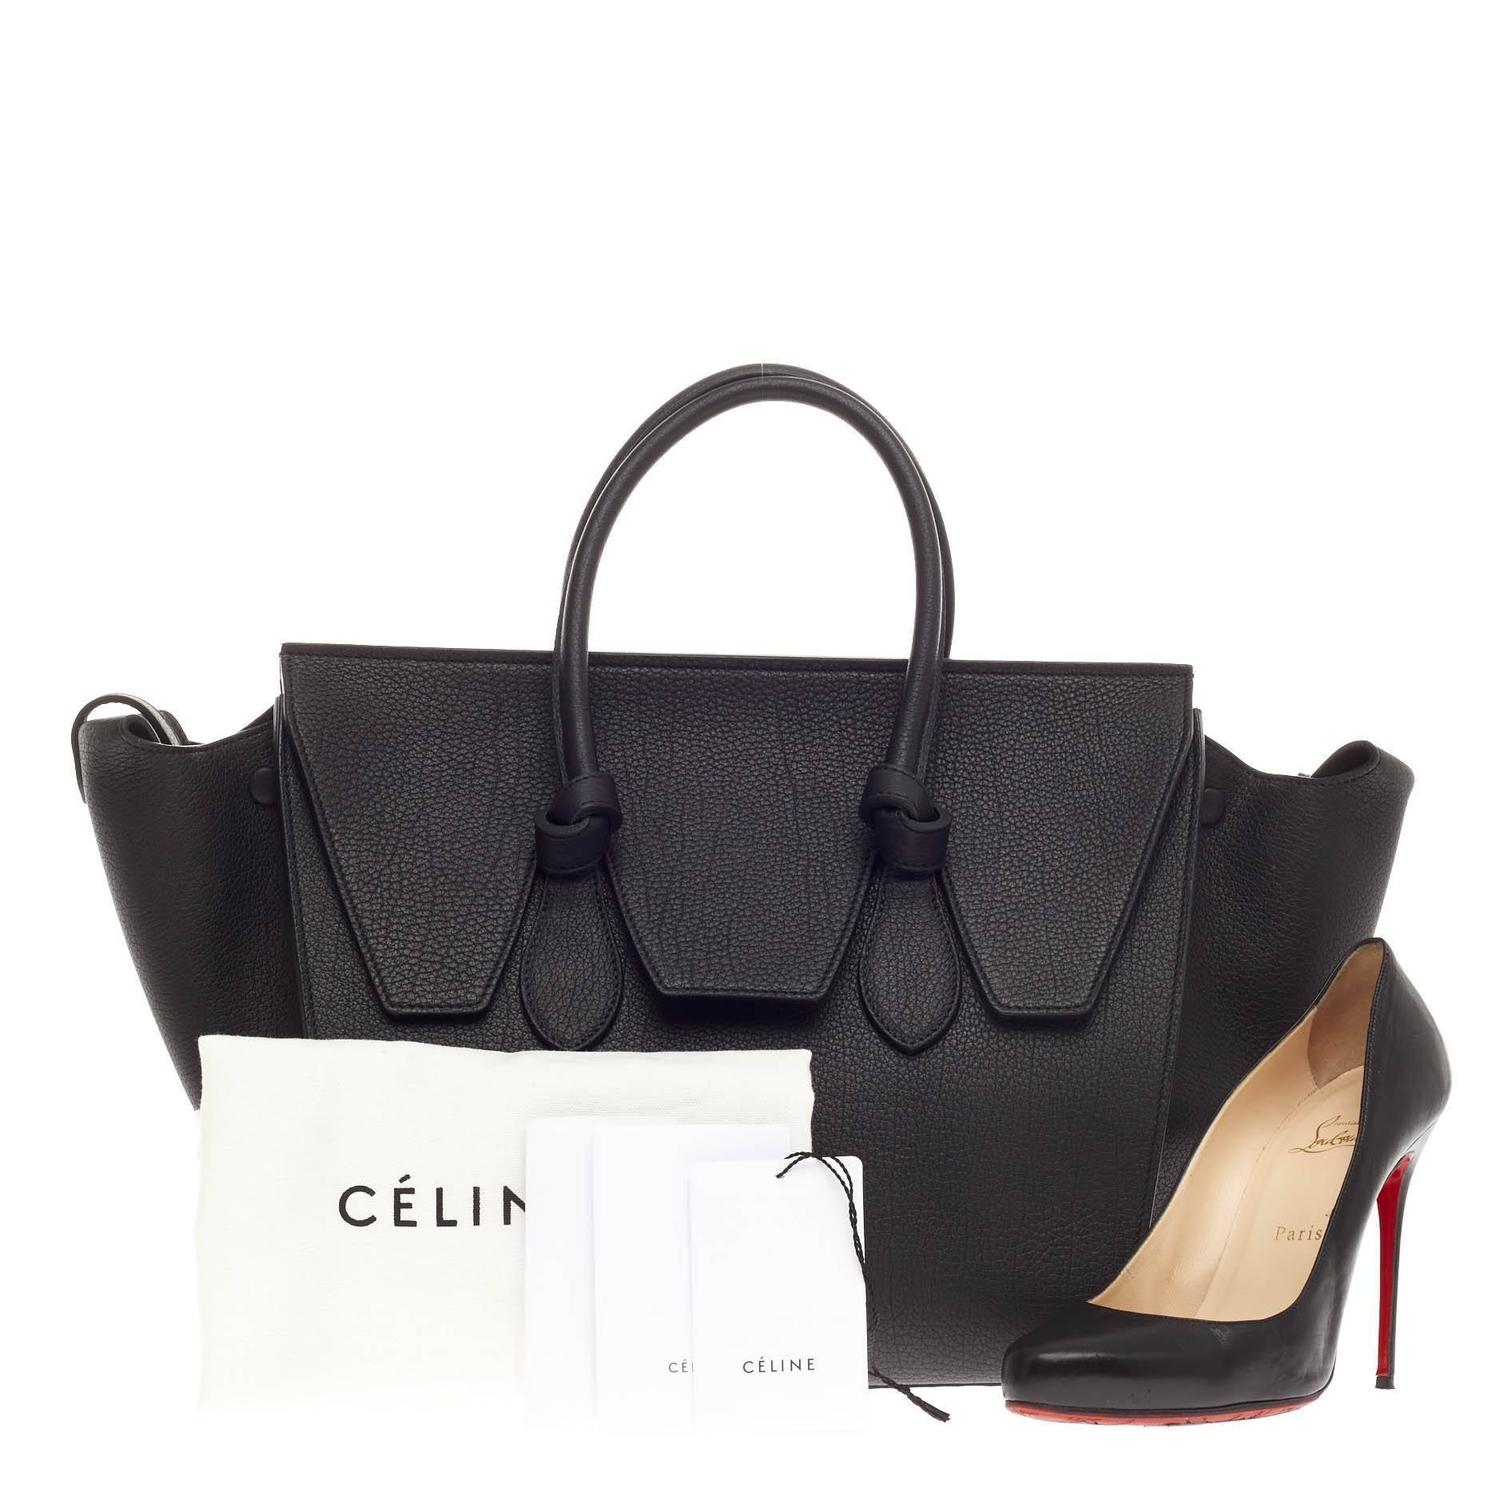 celine bags online review - celine tie leather tote